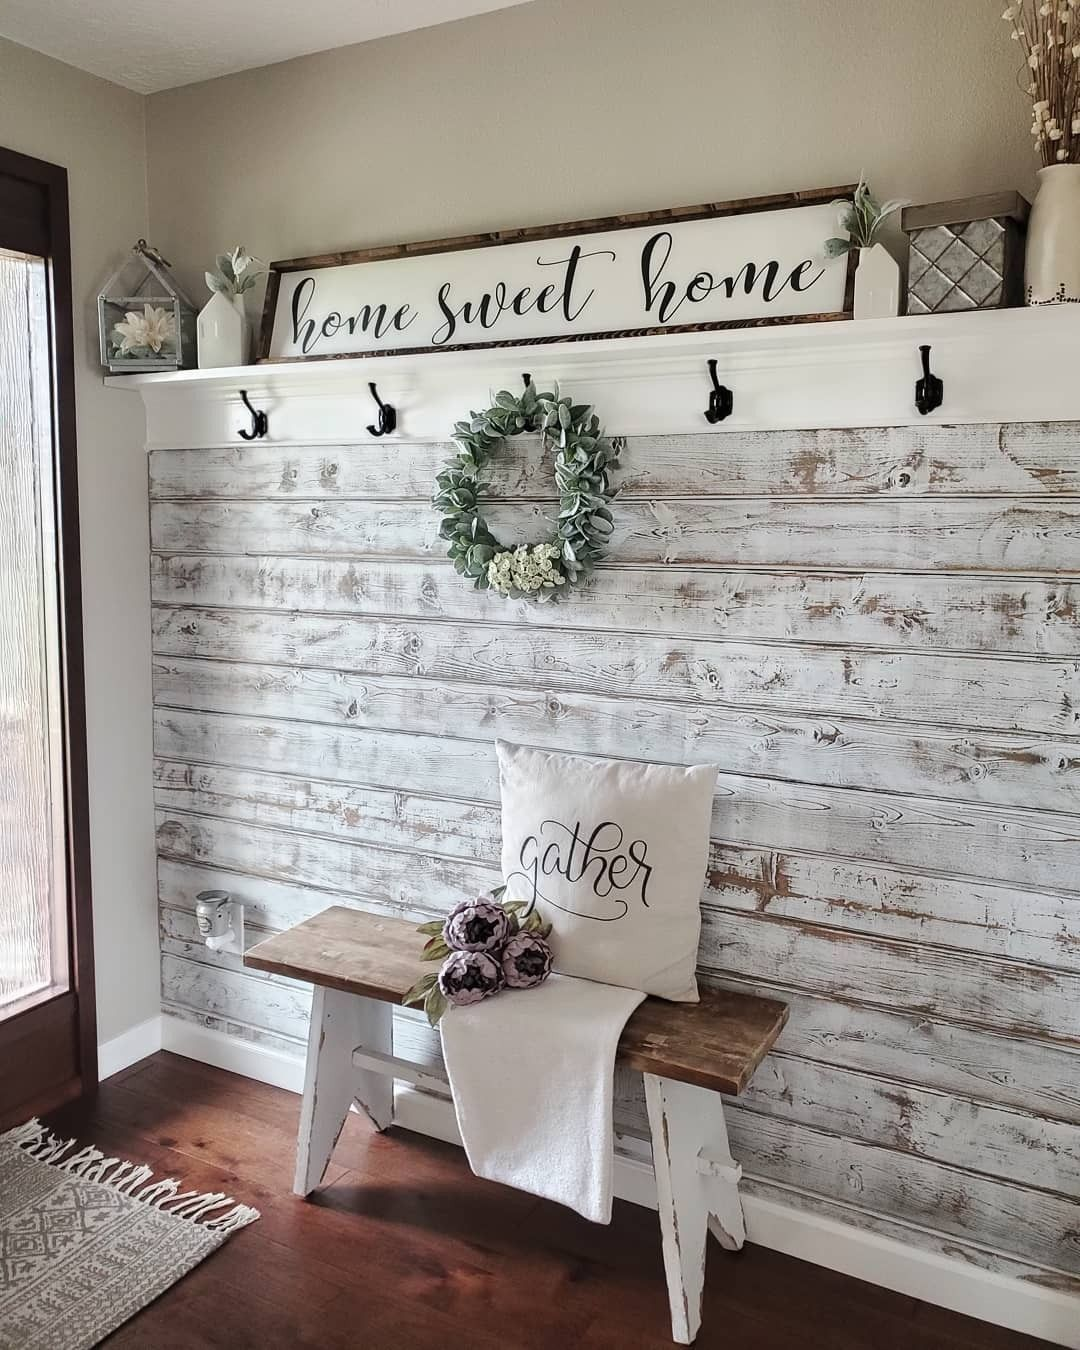 Gorgeous DIY Farmhouse Furniture and Decor Ideas For A Rustic Country Home - DIY & Crafts